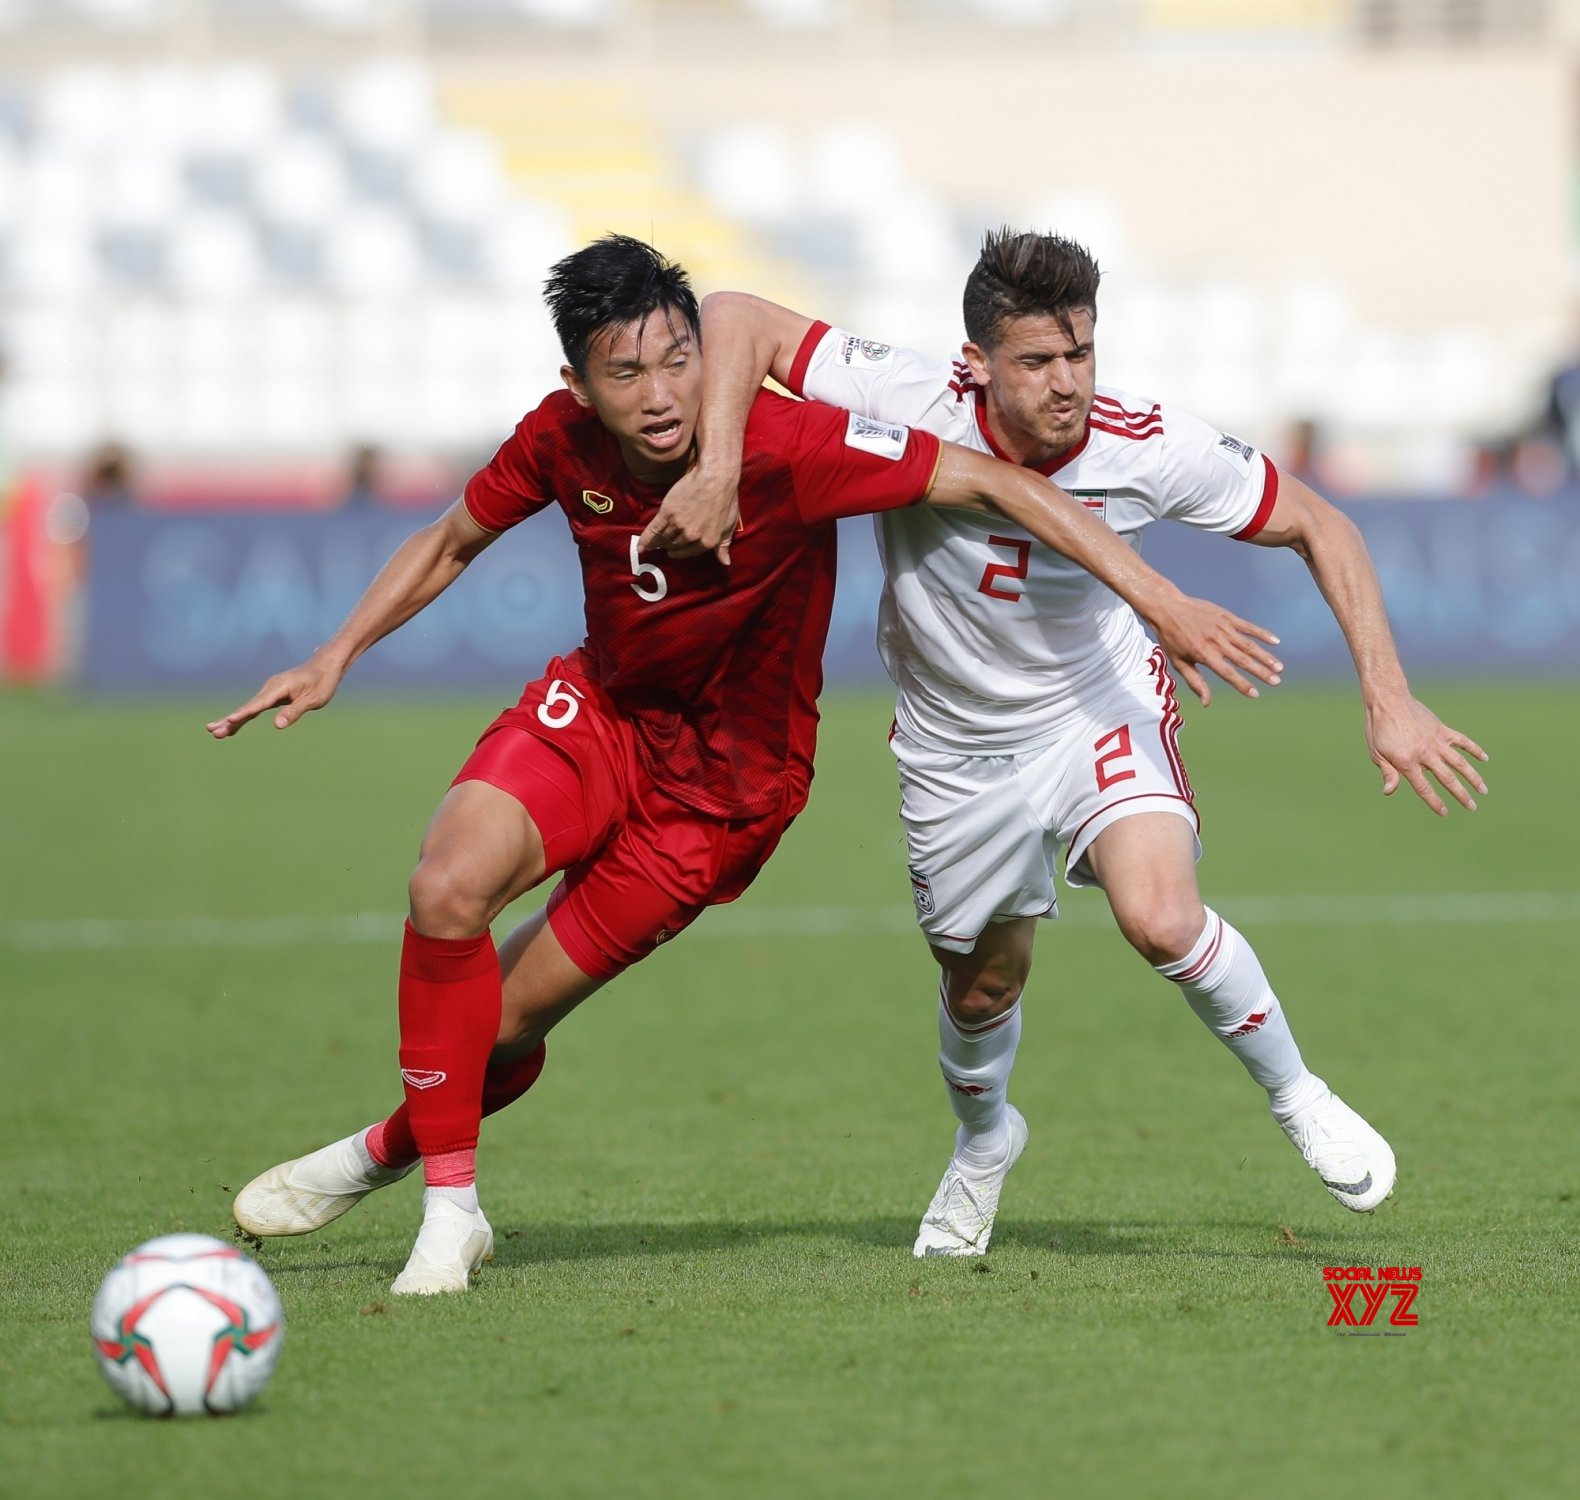 2a3e2f7e6 UAE - ABU DHABI - SOCCER - AFC ASIAN CUP 2019 - GROUP D - VIETNAM VS ...